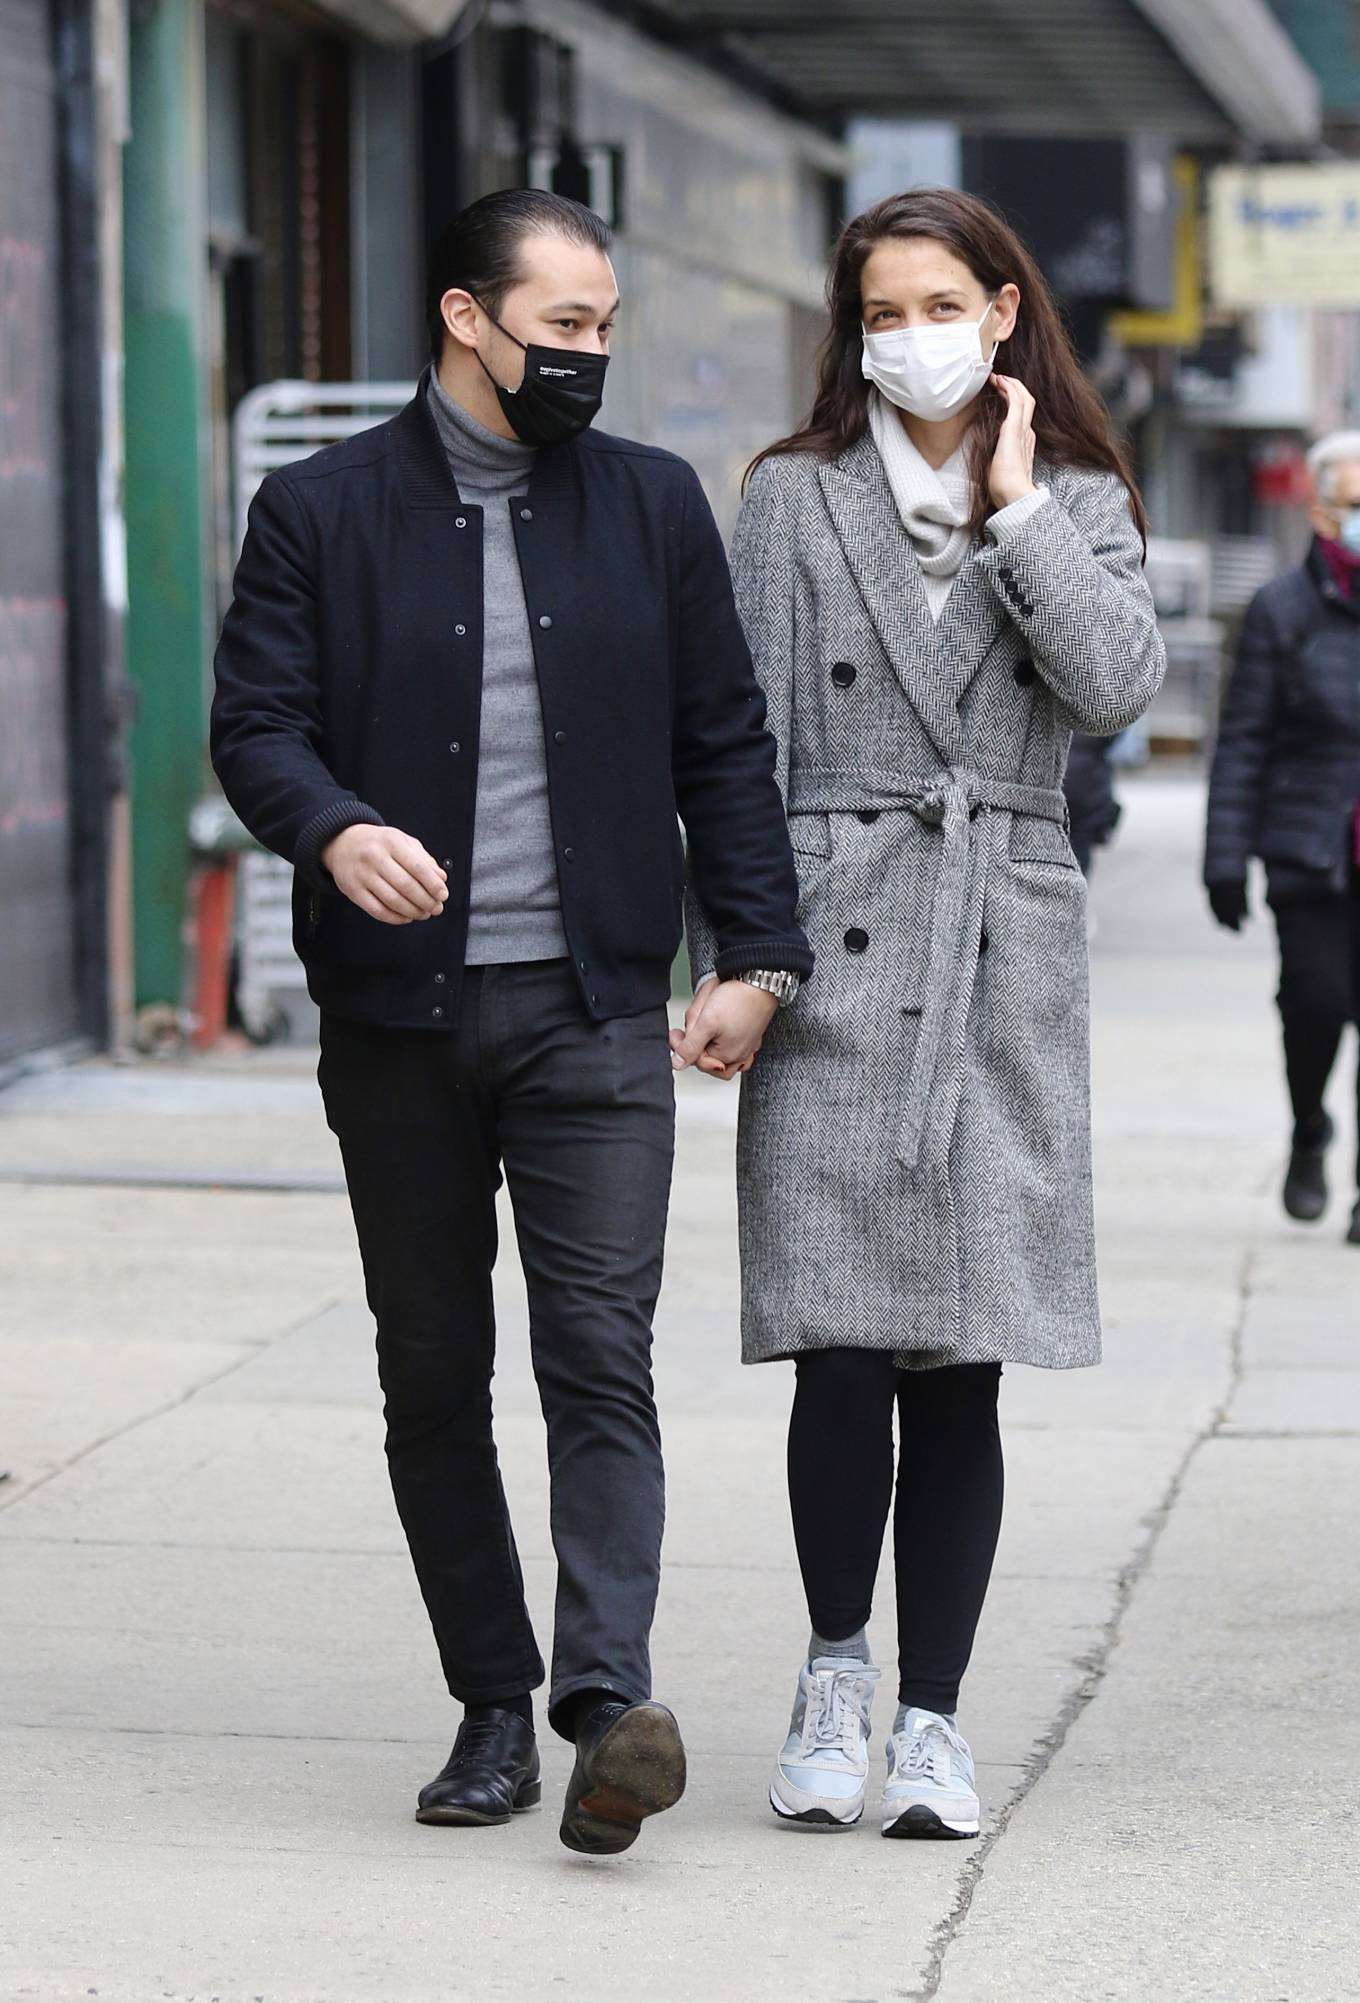 Katie Holmes - With Emilio Vitolo Jr. hold hands in Manhattan's Downtown area